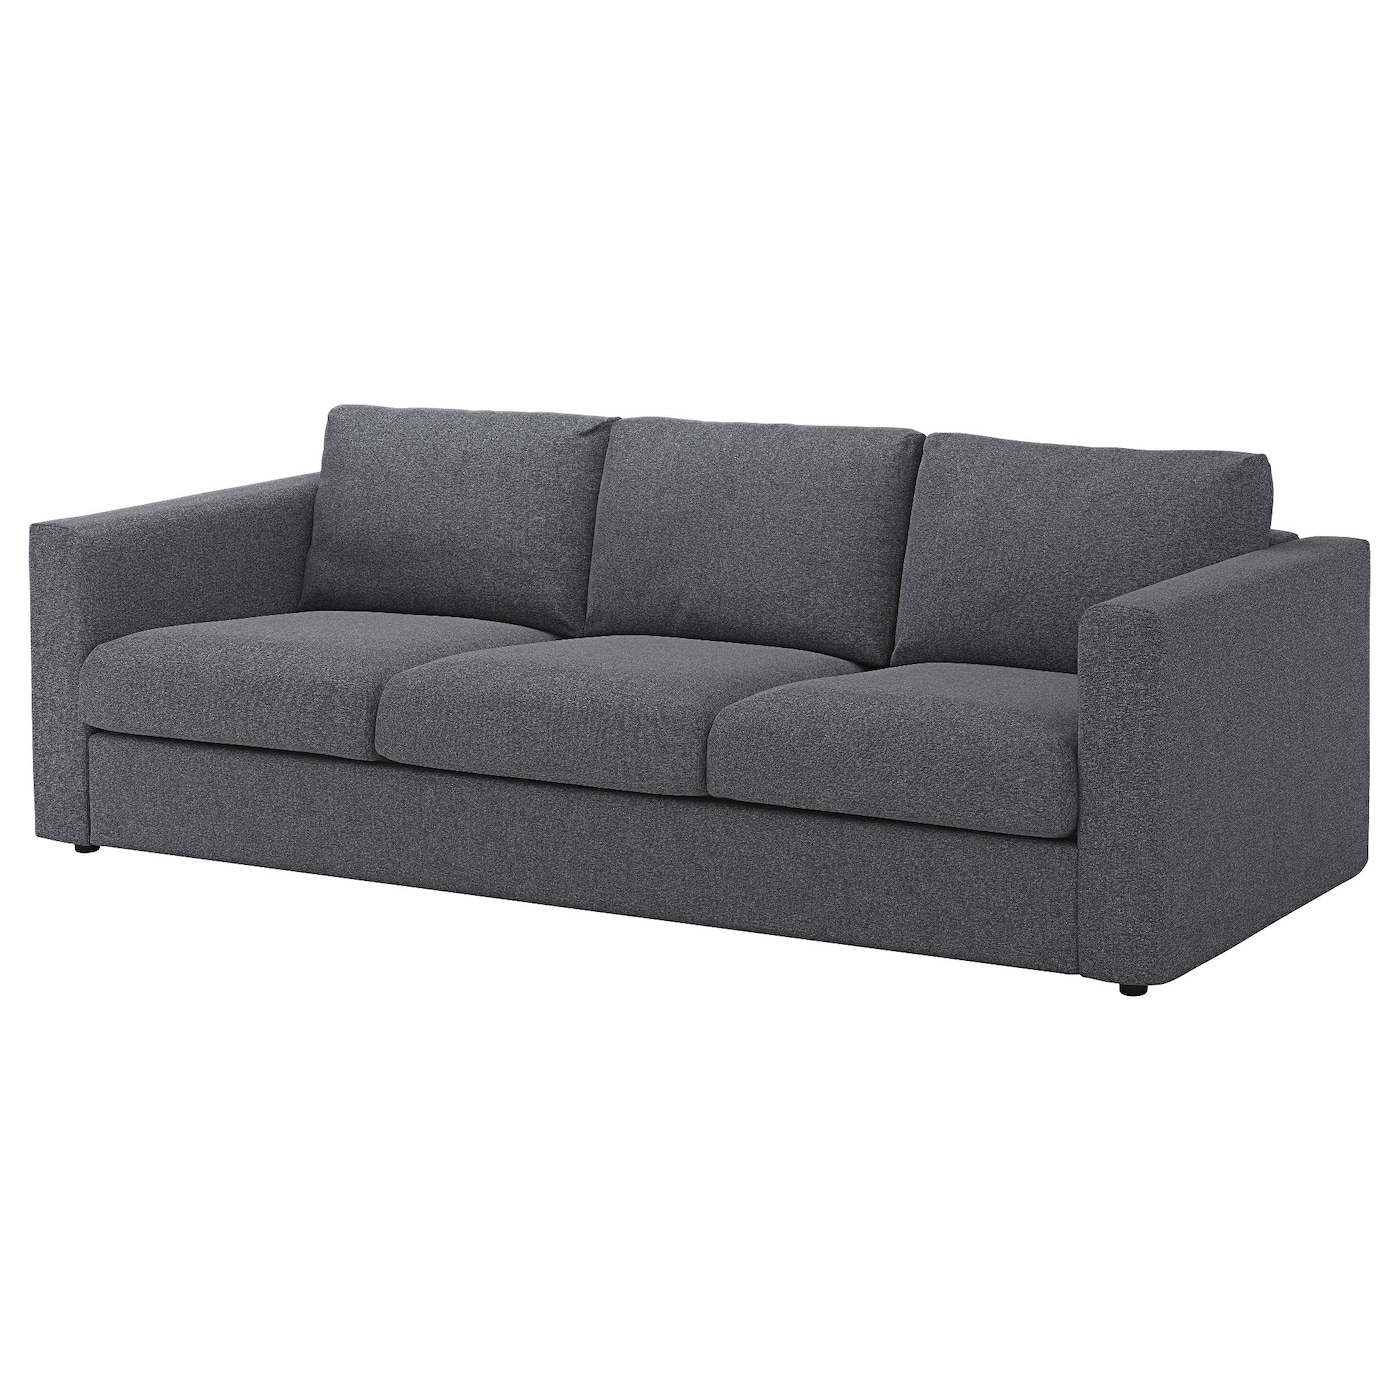 Merveilleux IKEA VIMLE 3 Seat Sofa The Cover Is Easy To Keep Clean Since It Is